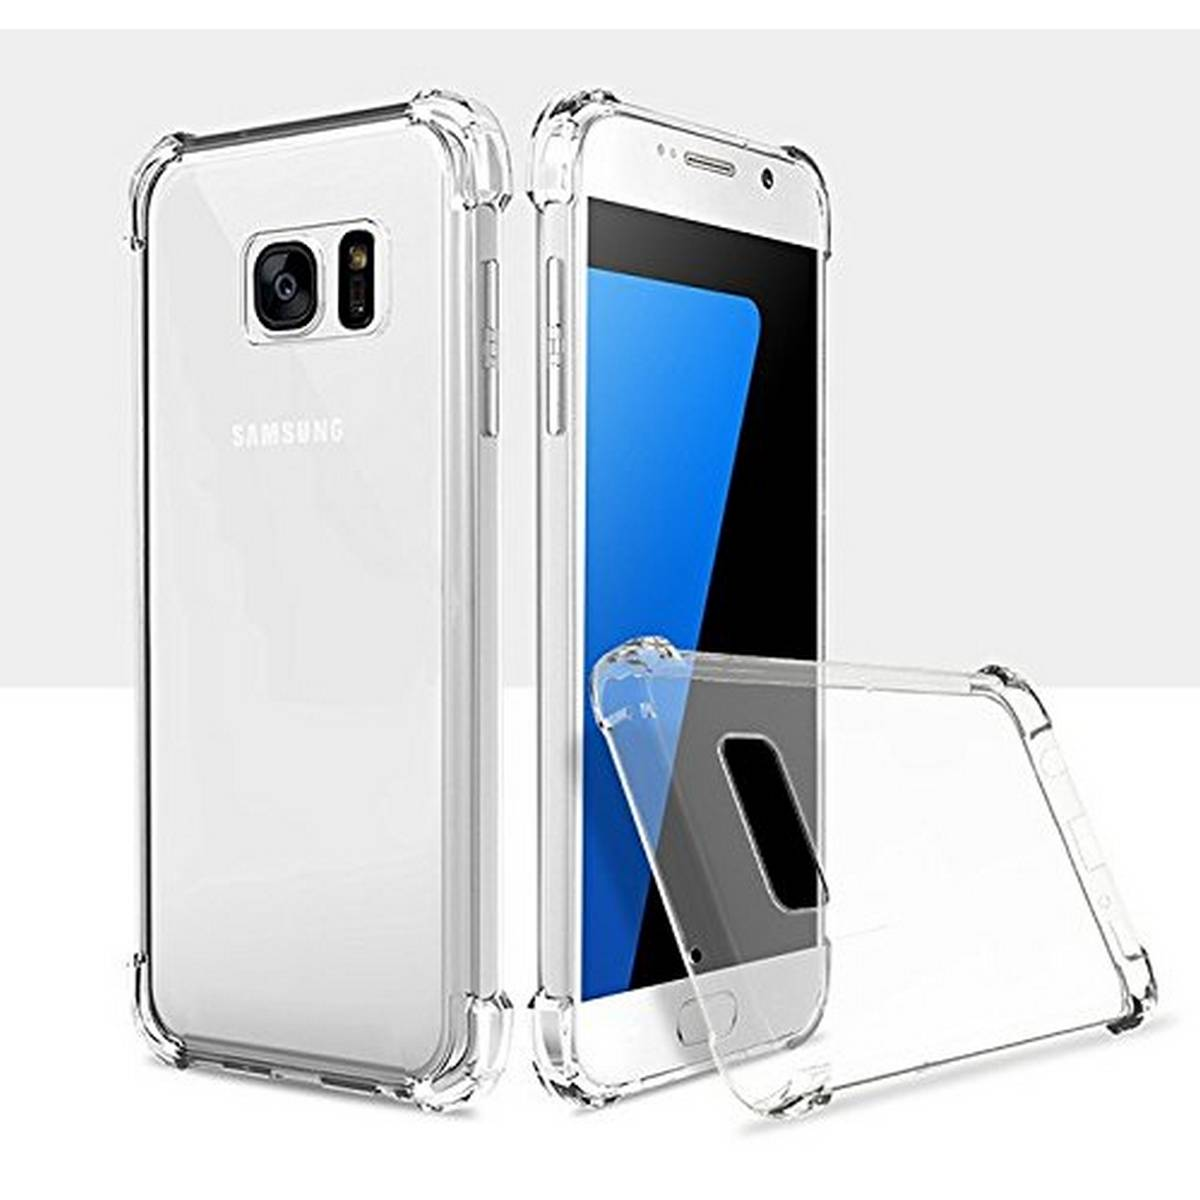 Samsung Galaxy S7 Edge Airbag Case Anti Shock and Anti-Scratch Resistant Clear View Transparent Silicone Back Cover